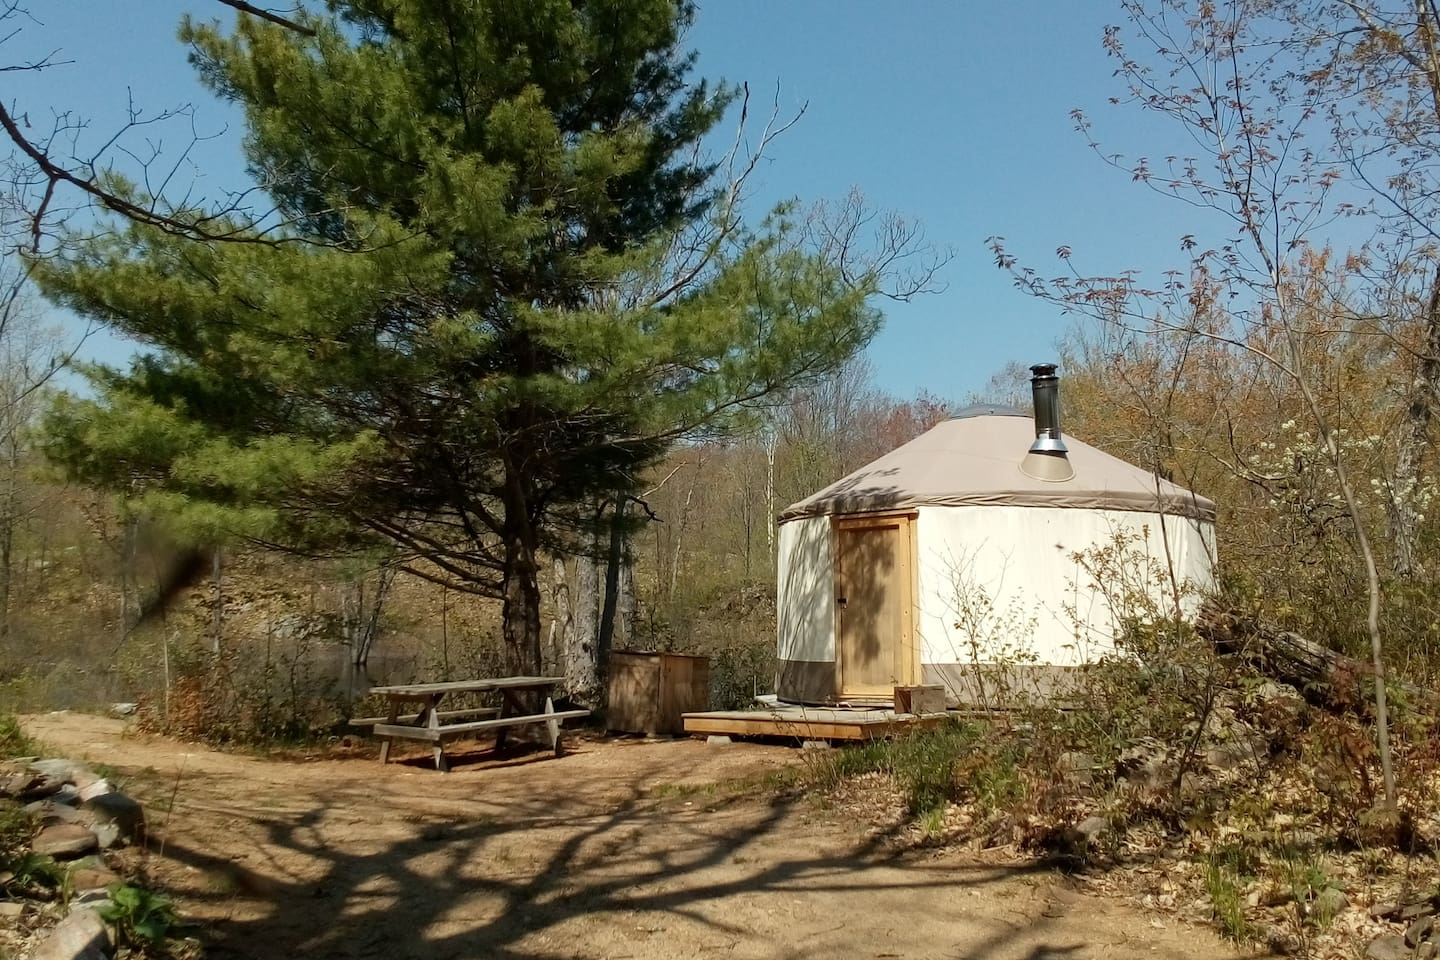 Campsite, mid-May 2017.